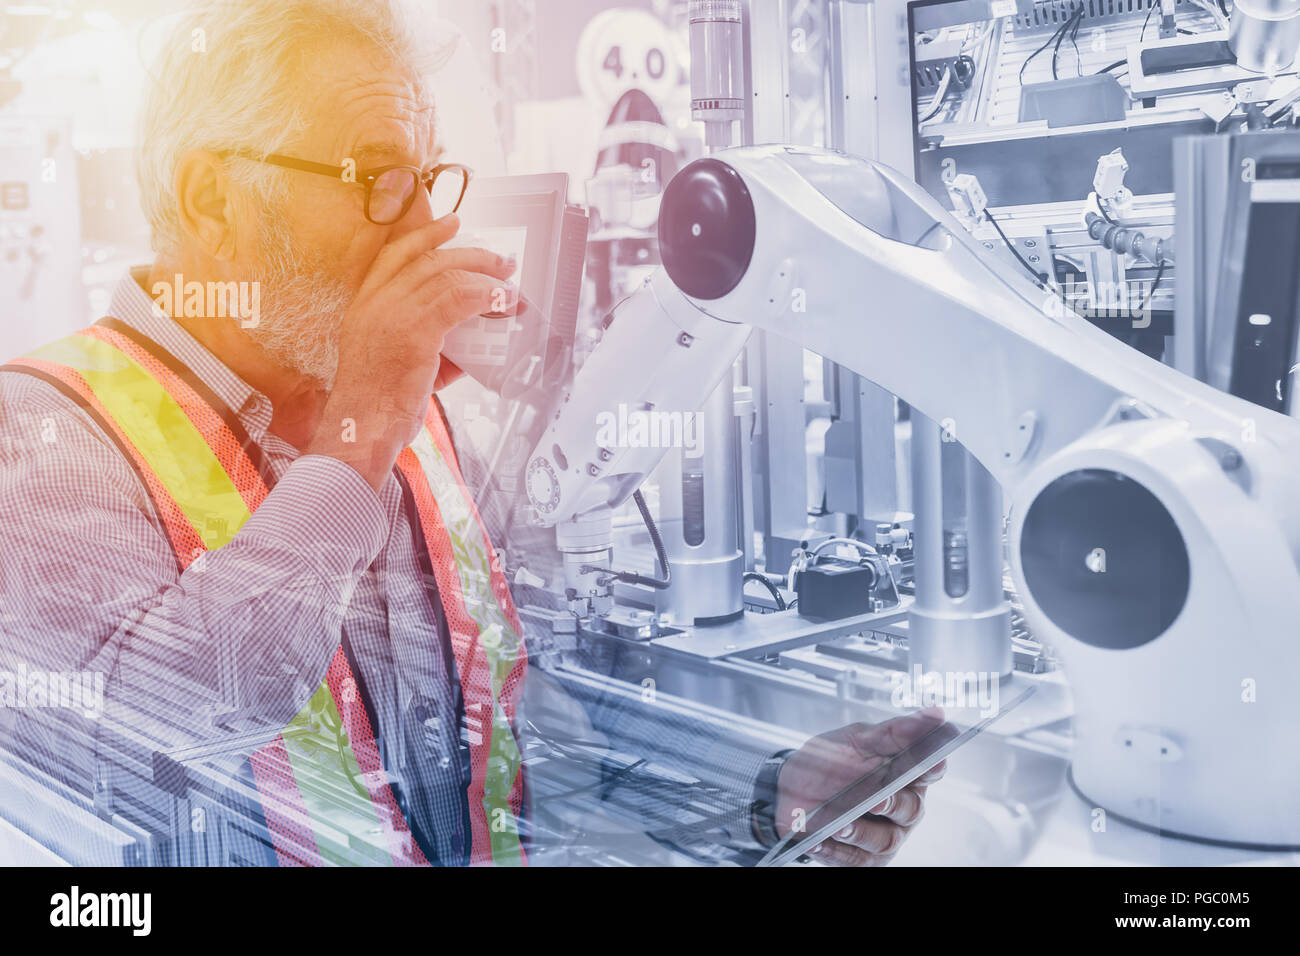 Engineer using tablet control robot arm in production line for robotic engineering concept - Stock Image